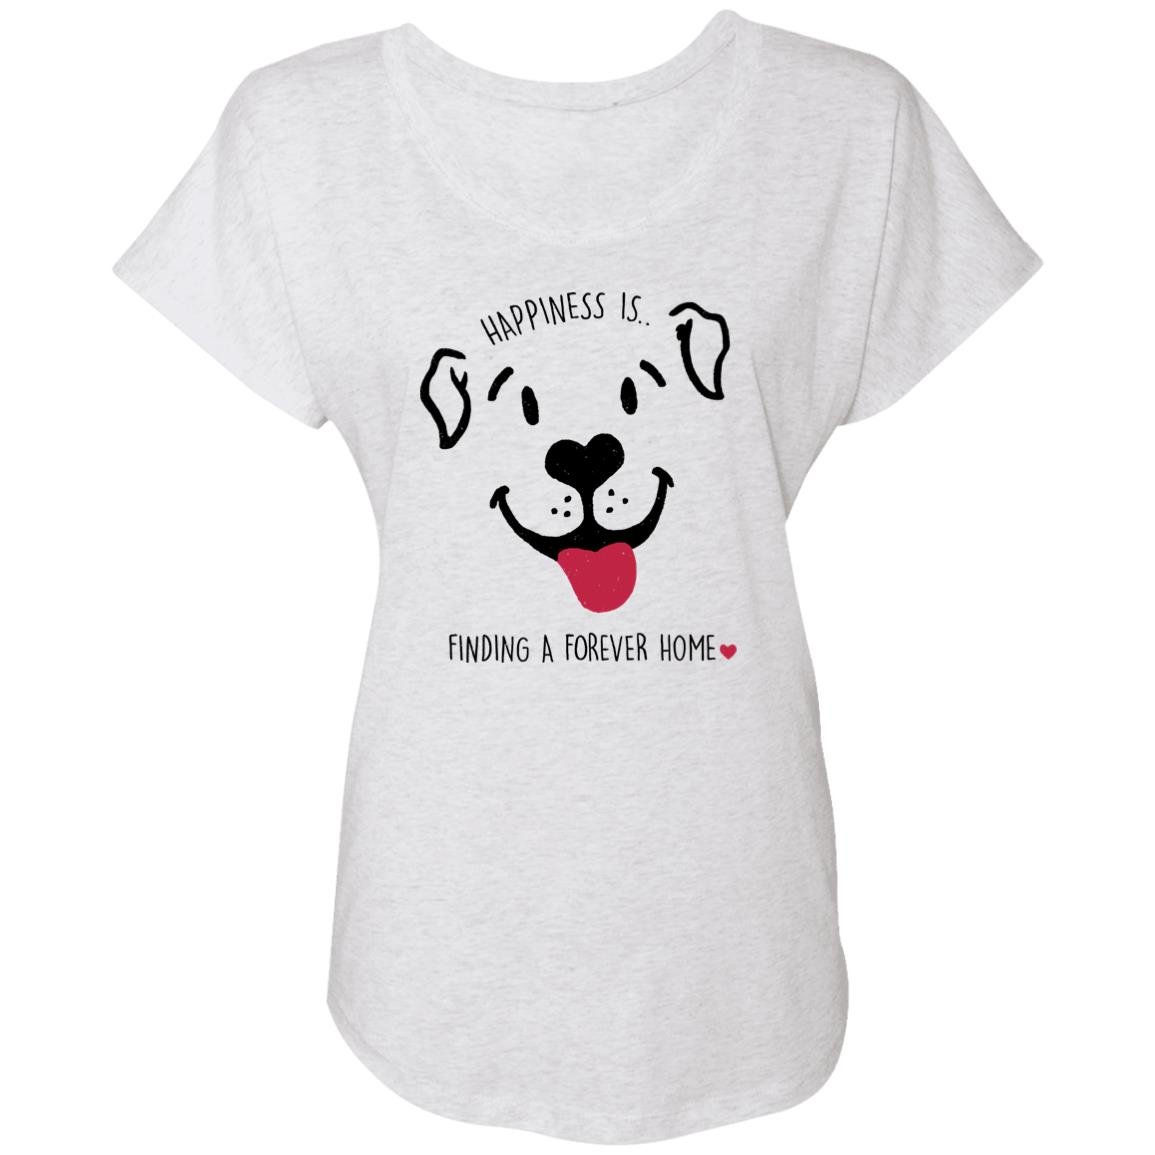 Happiness Is A Forever Home Heather White Slouchy Tee